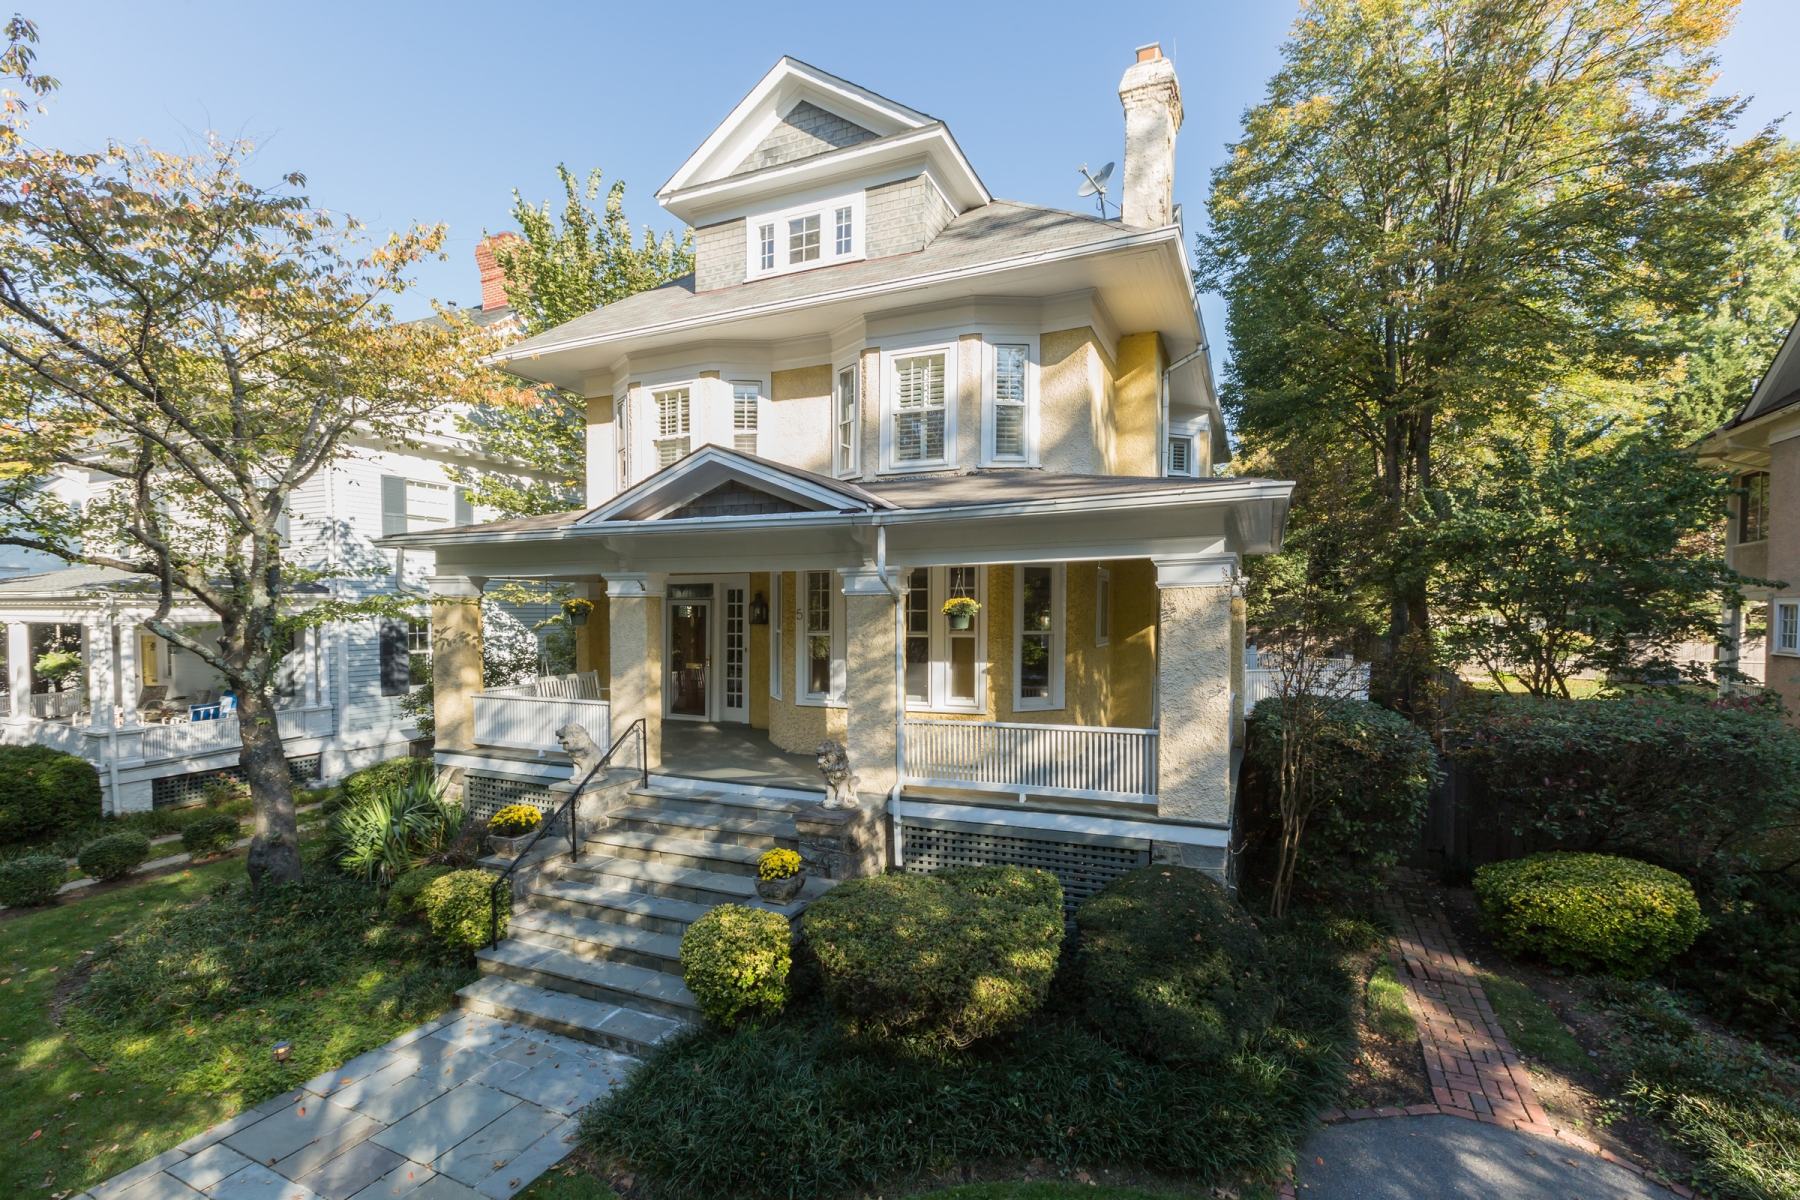 Single Family Home for Sale at 5 Irving Street E, Chevy Chase Chevy Chase, Maryland 20815 United States